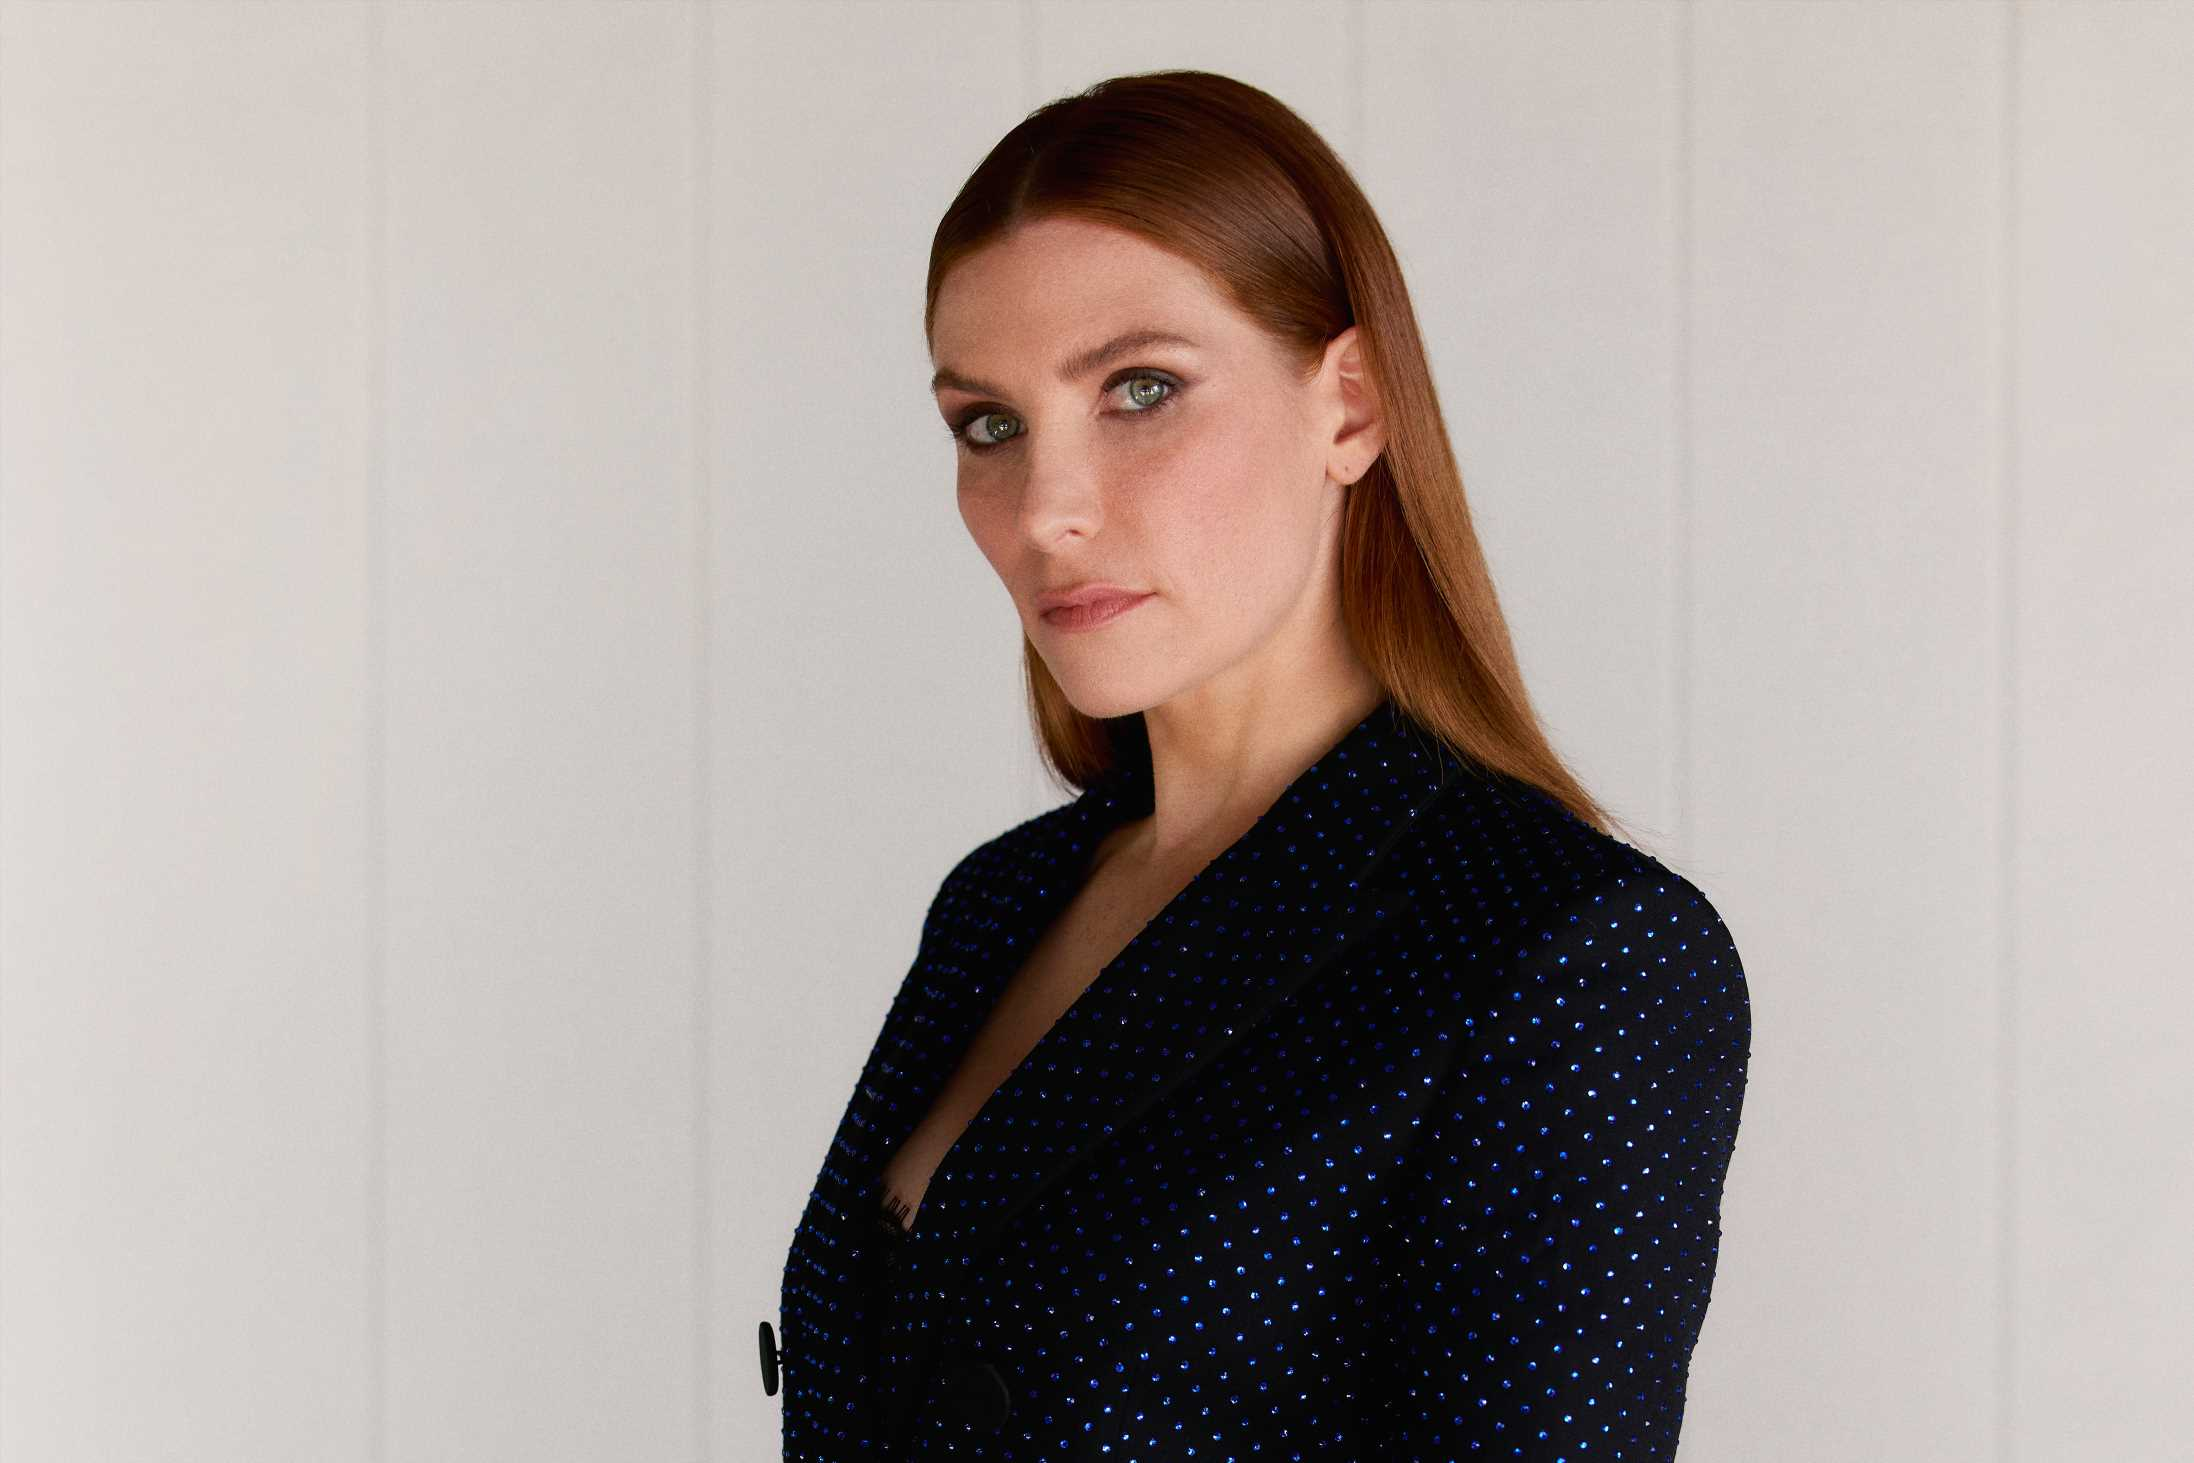 Sarah Levy Leaves Behind 'Schitt's Creek' for Sci-fi